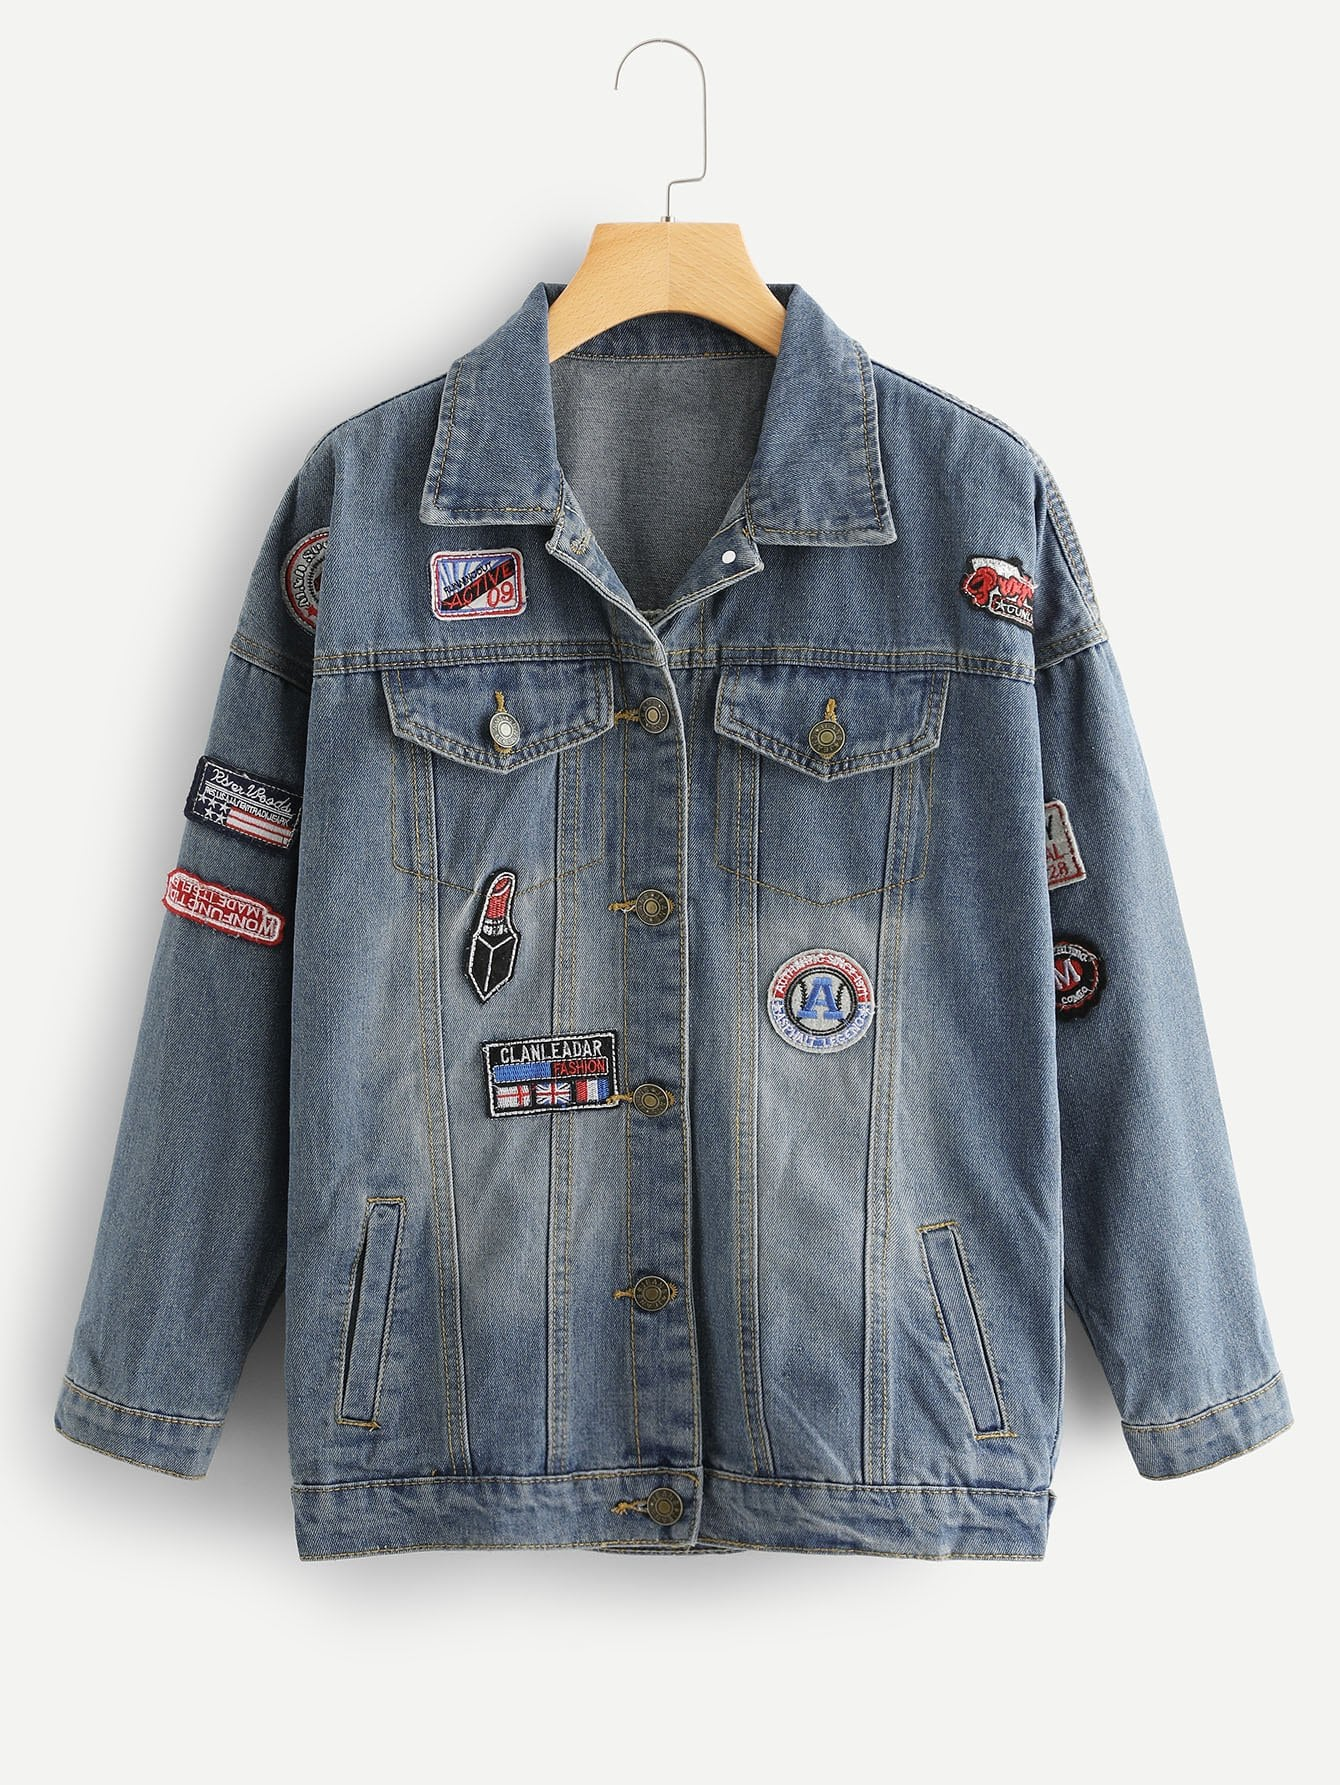 Faded Patched Denim Jacket men embroidery patched denim jacket